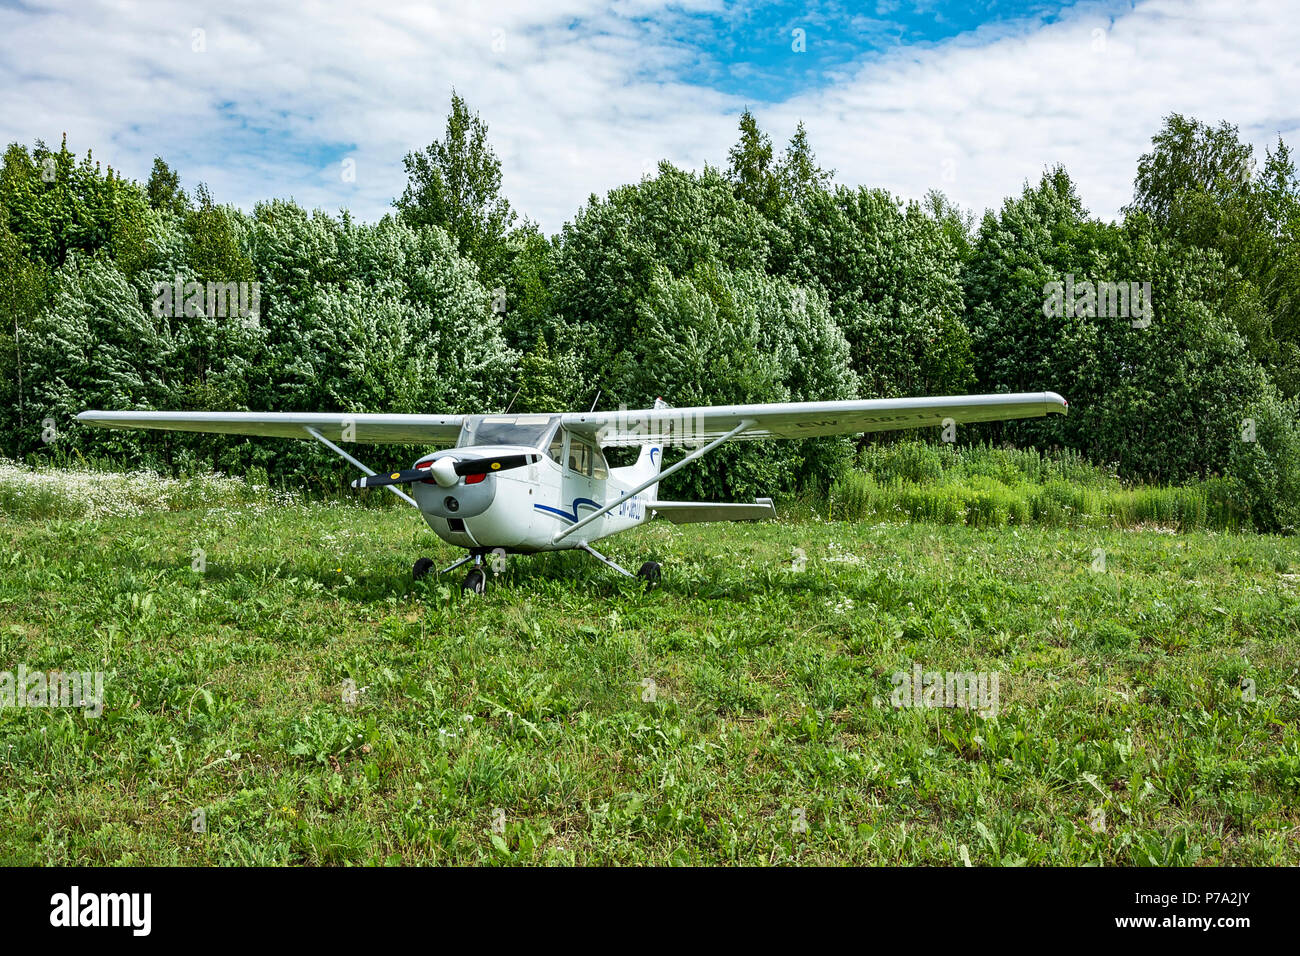 Minsk, Belarus - June 21, 2018: Single-engine aircraft stands on the green grass near the forest. - Stock Image